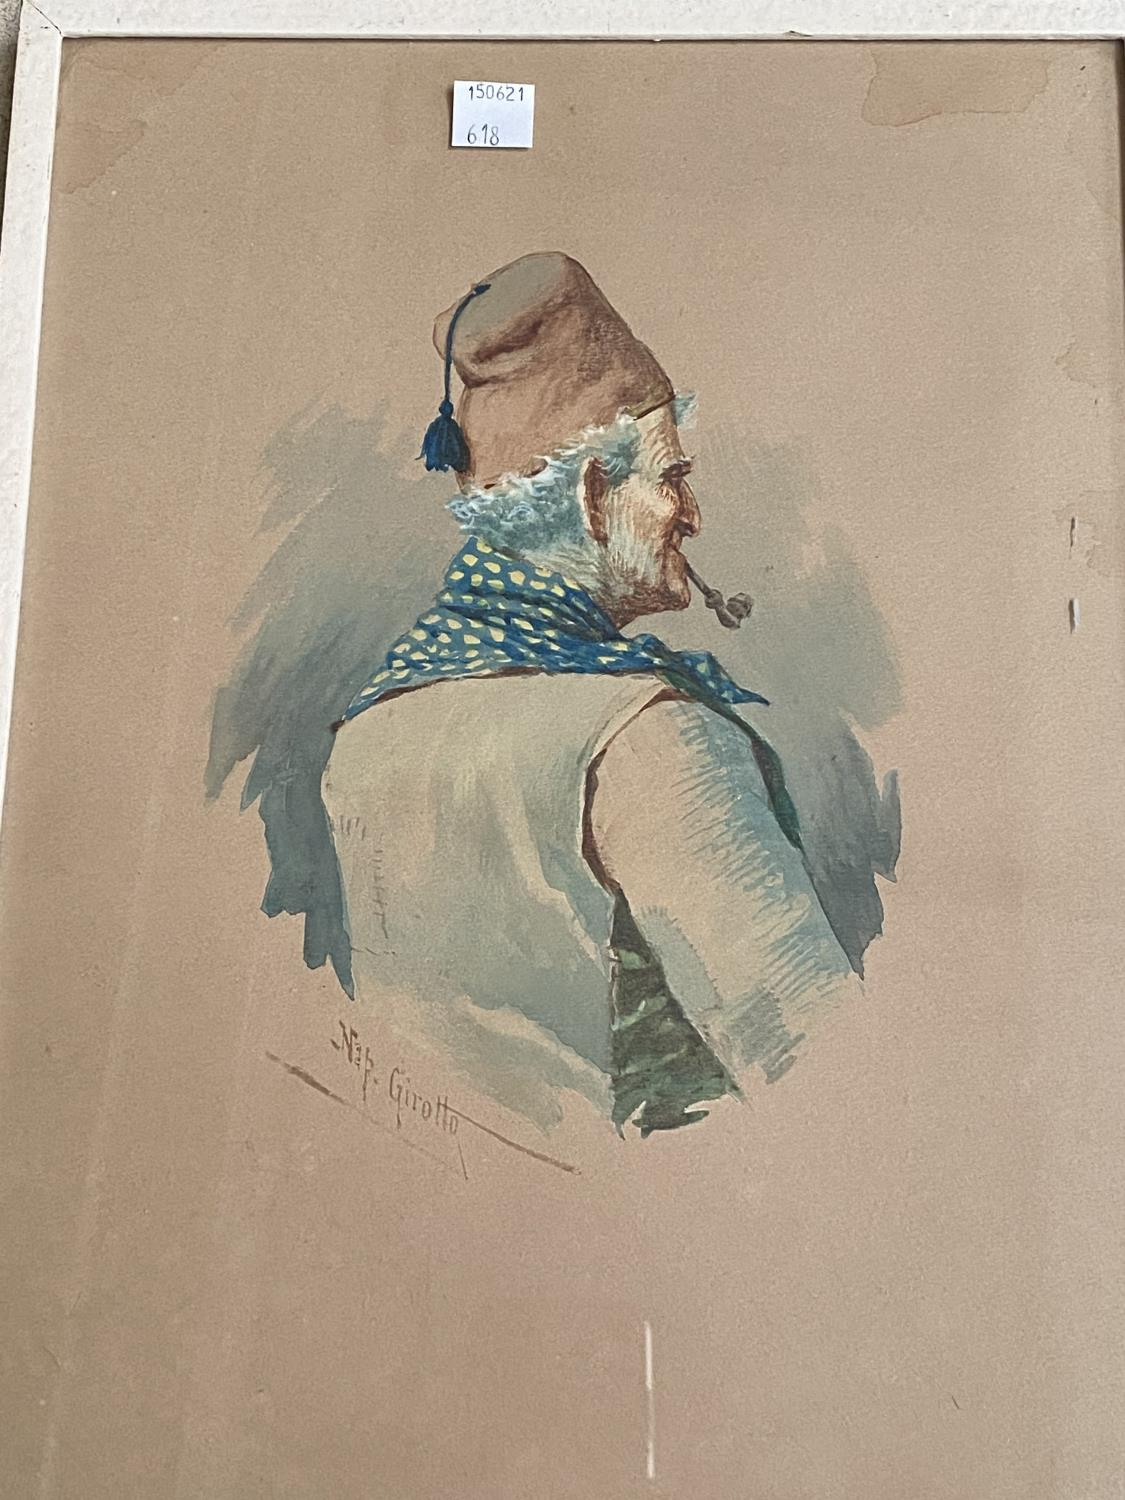 Nap Girotto: Peasant man in fez, smoking a pipe, watercolour, signed, 34 x 24 cm, framed and glazed